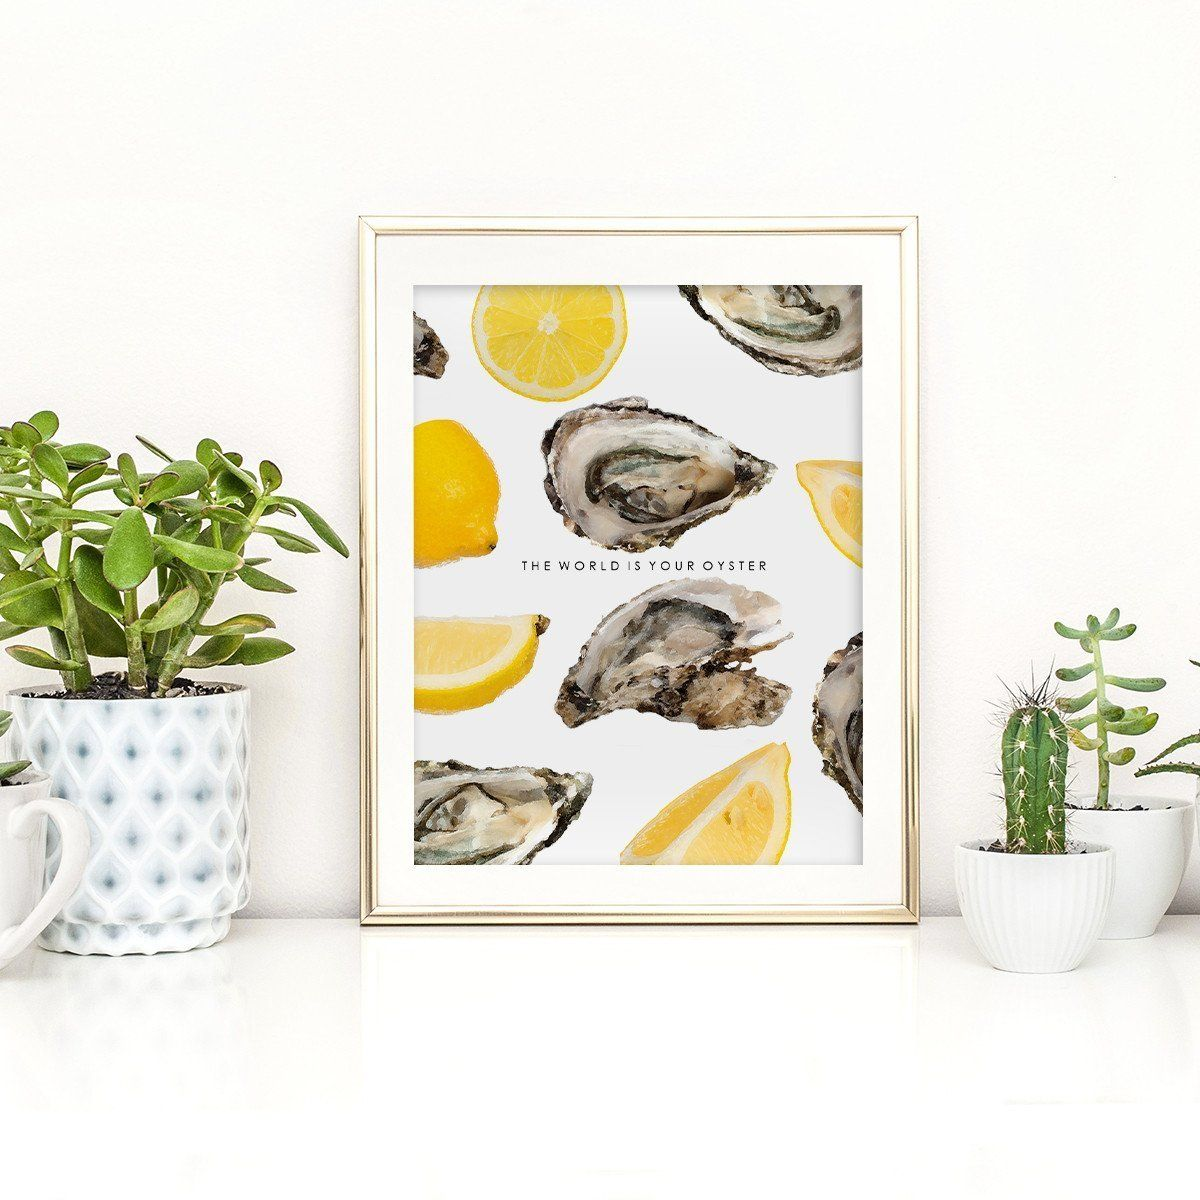 The World is Your Oyster Print Lovers art, Prints, Print